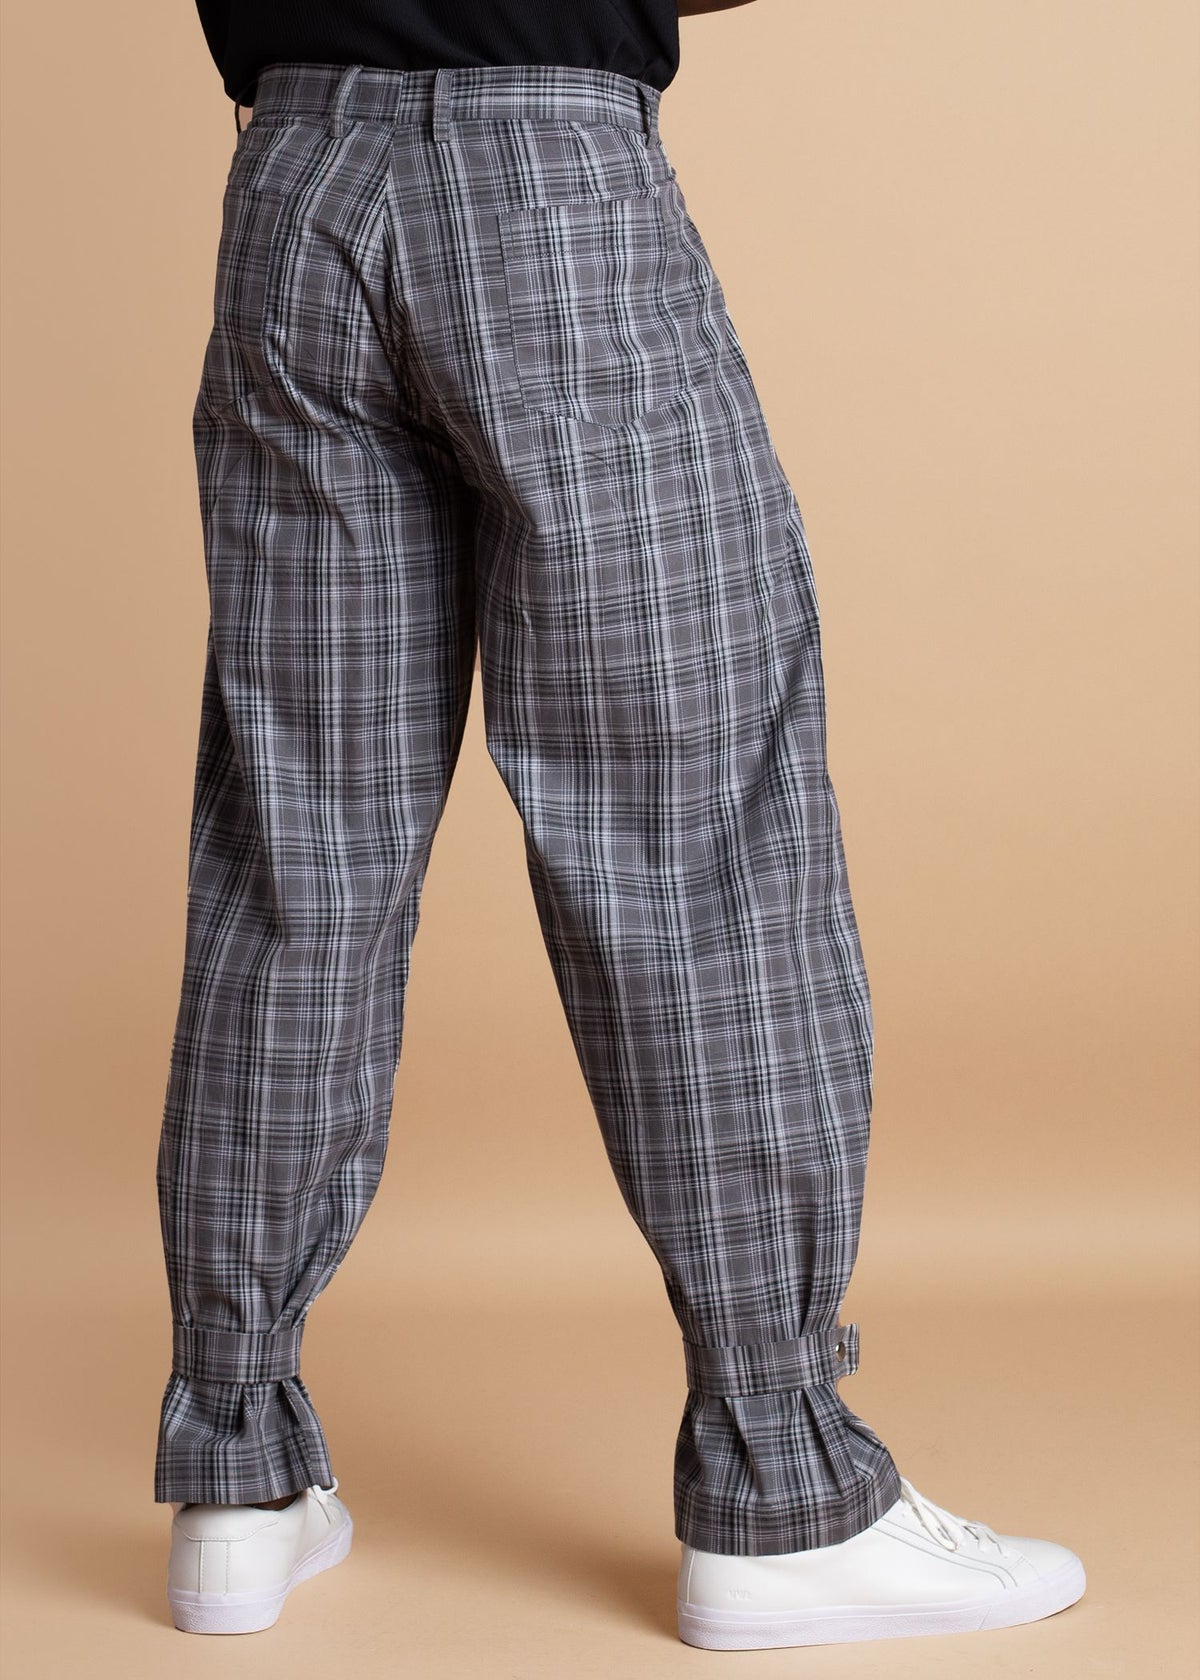 Atto Tetteh Black and White Tartan Ankle Strapped Pant